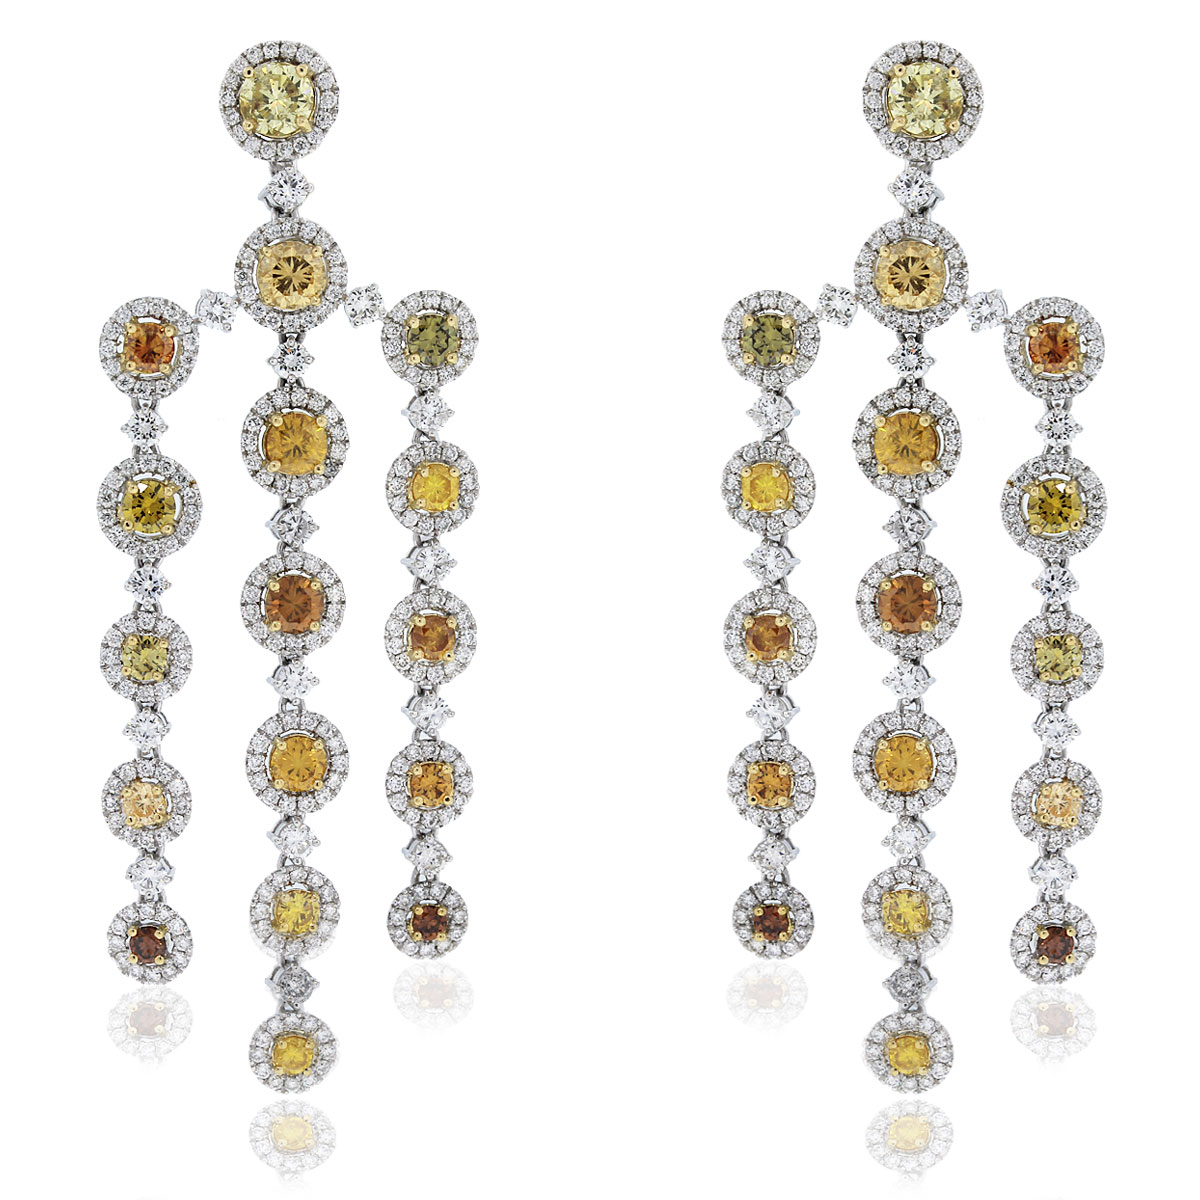 GIA Certified Platinum Fancy Yellow Diamond Chandelier Earrings